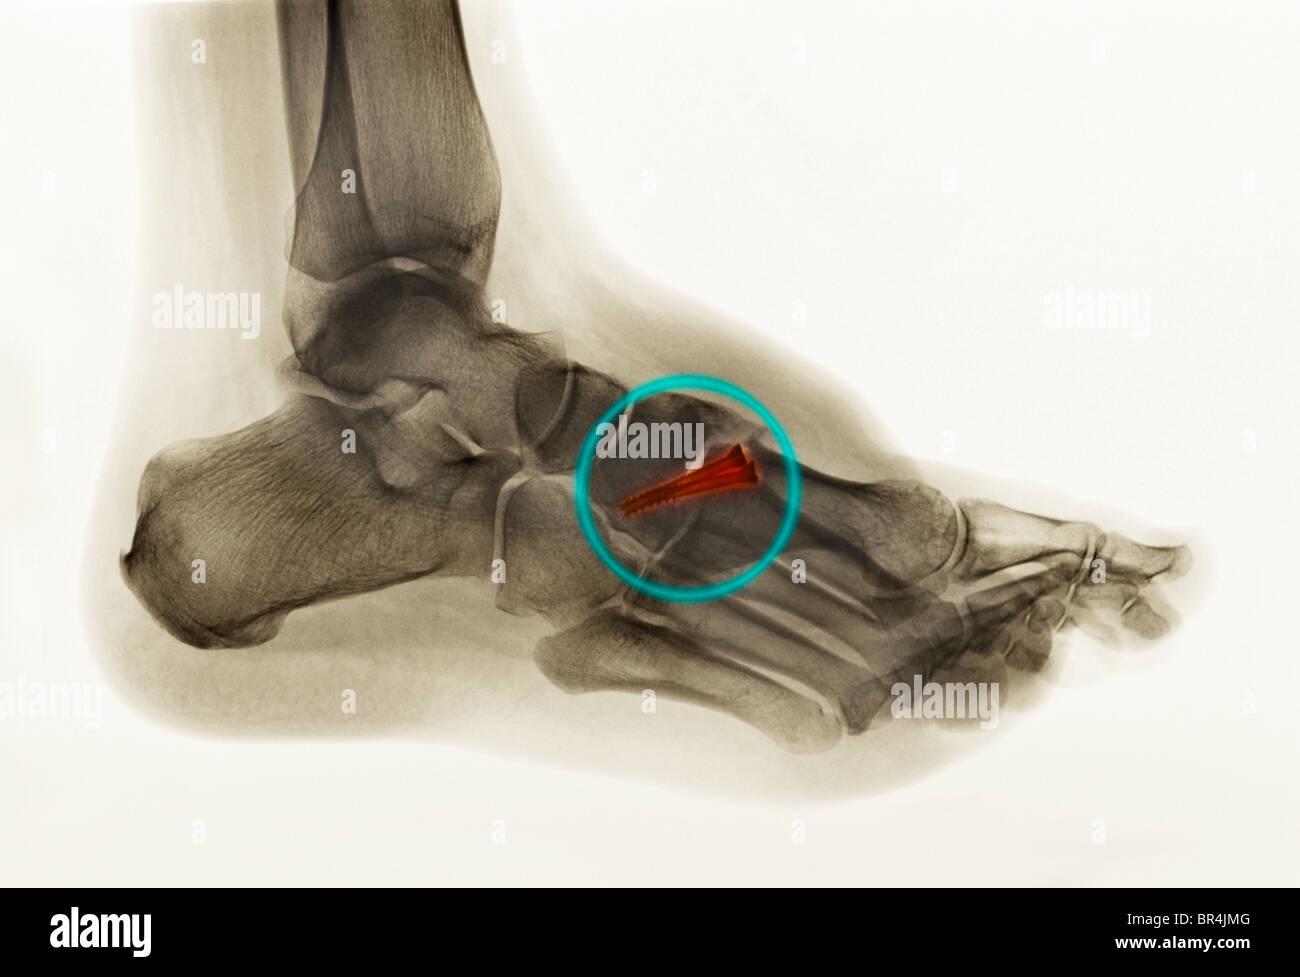 foot x-ray of a 30 year old man who had surgery of the first metatarsal with 2 screws fusing the metatarsal to the - Stock Image